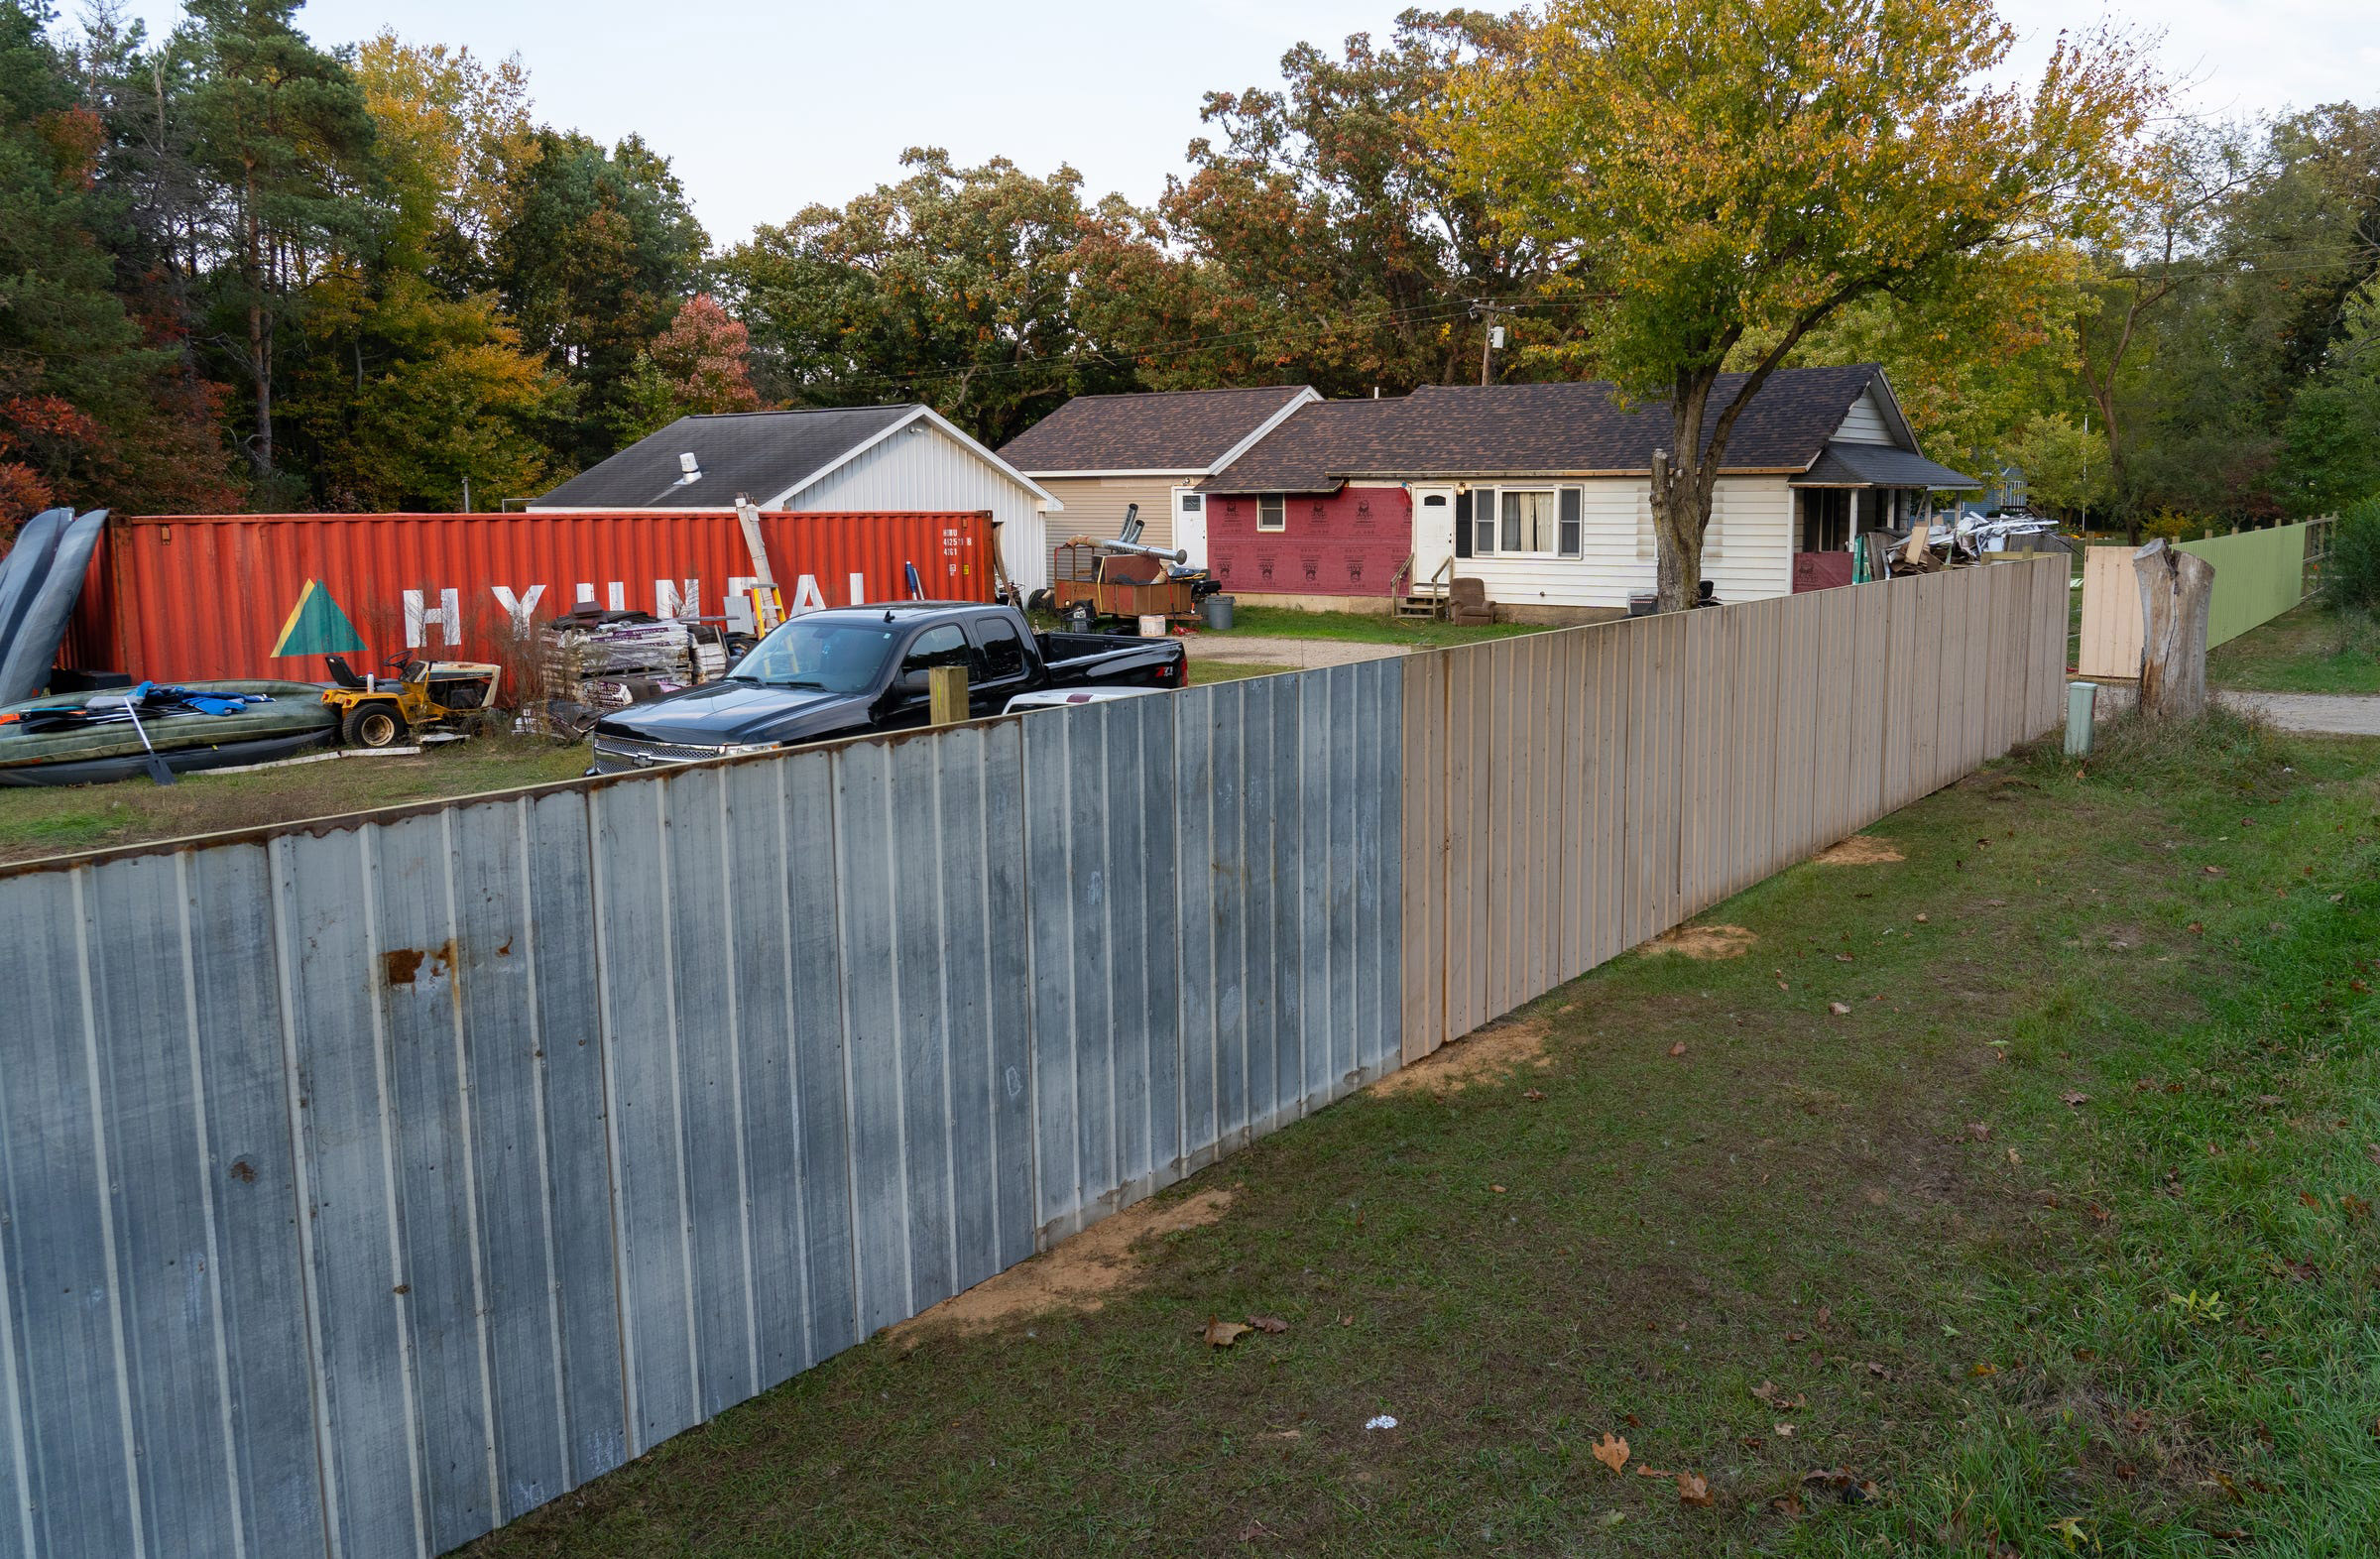 A wall recently constructed outside of the home of William Null in Shelbyville, Mich., Oct. 9, 2020. Null is one of 13 suspects accused of plotting to abduct Michigan Gov. Gretchen Whitmer.